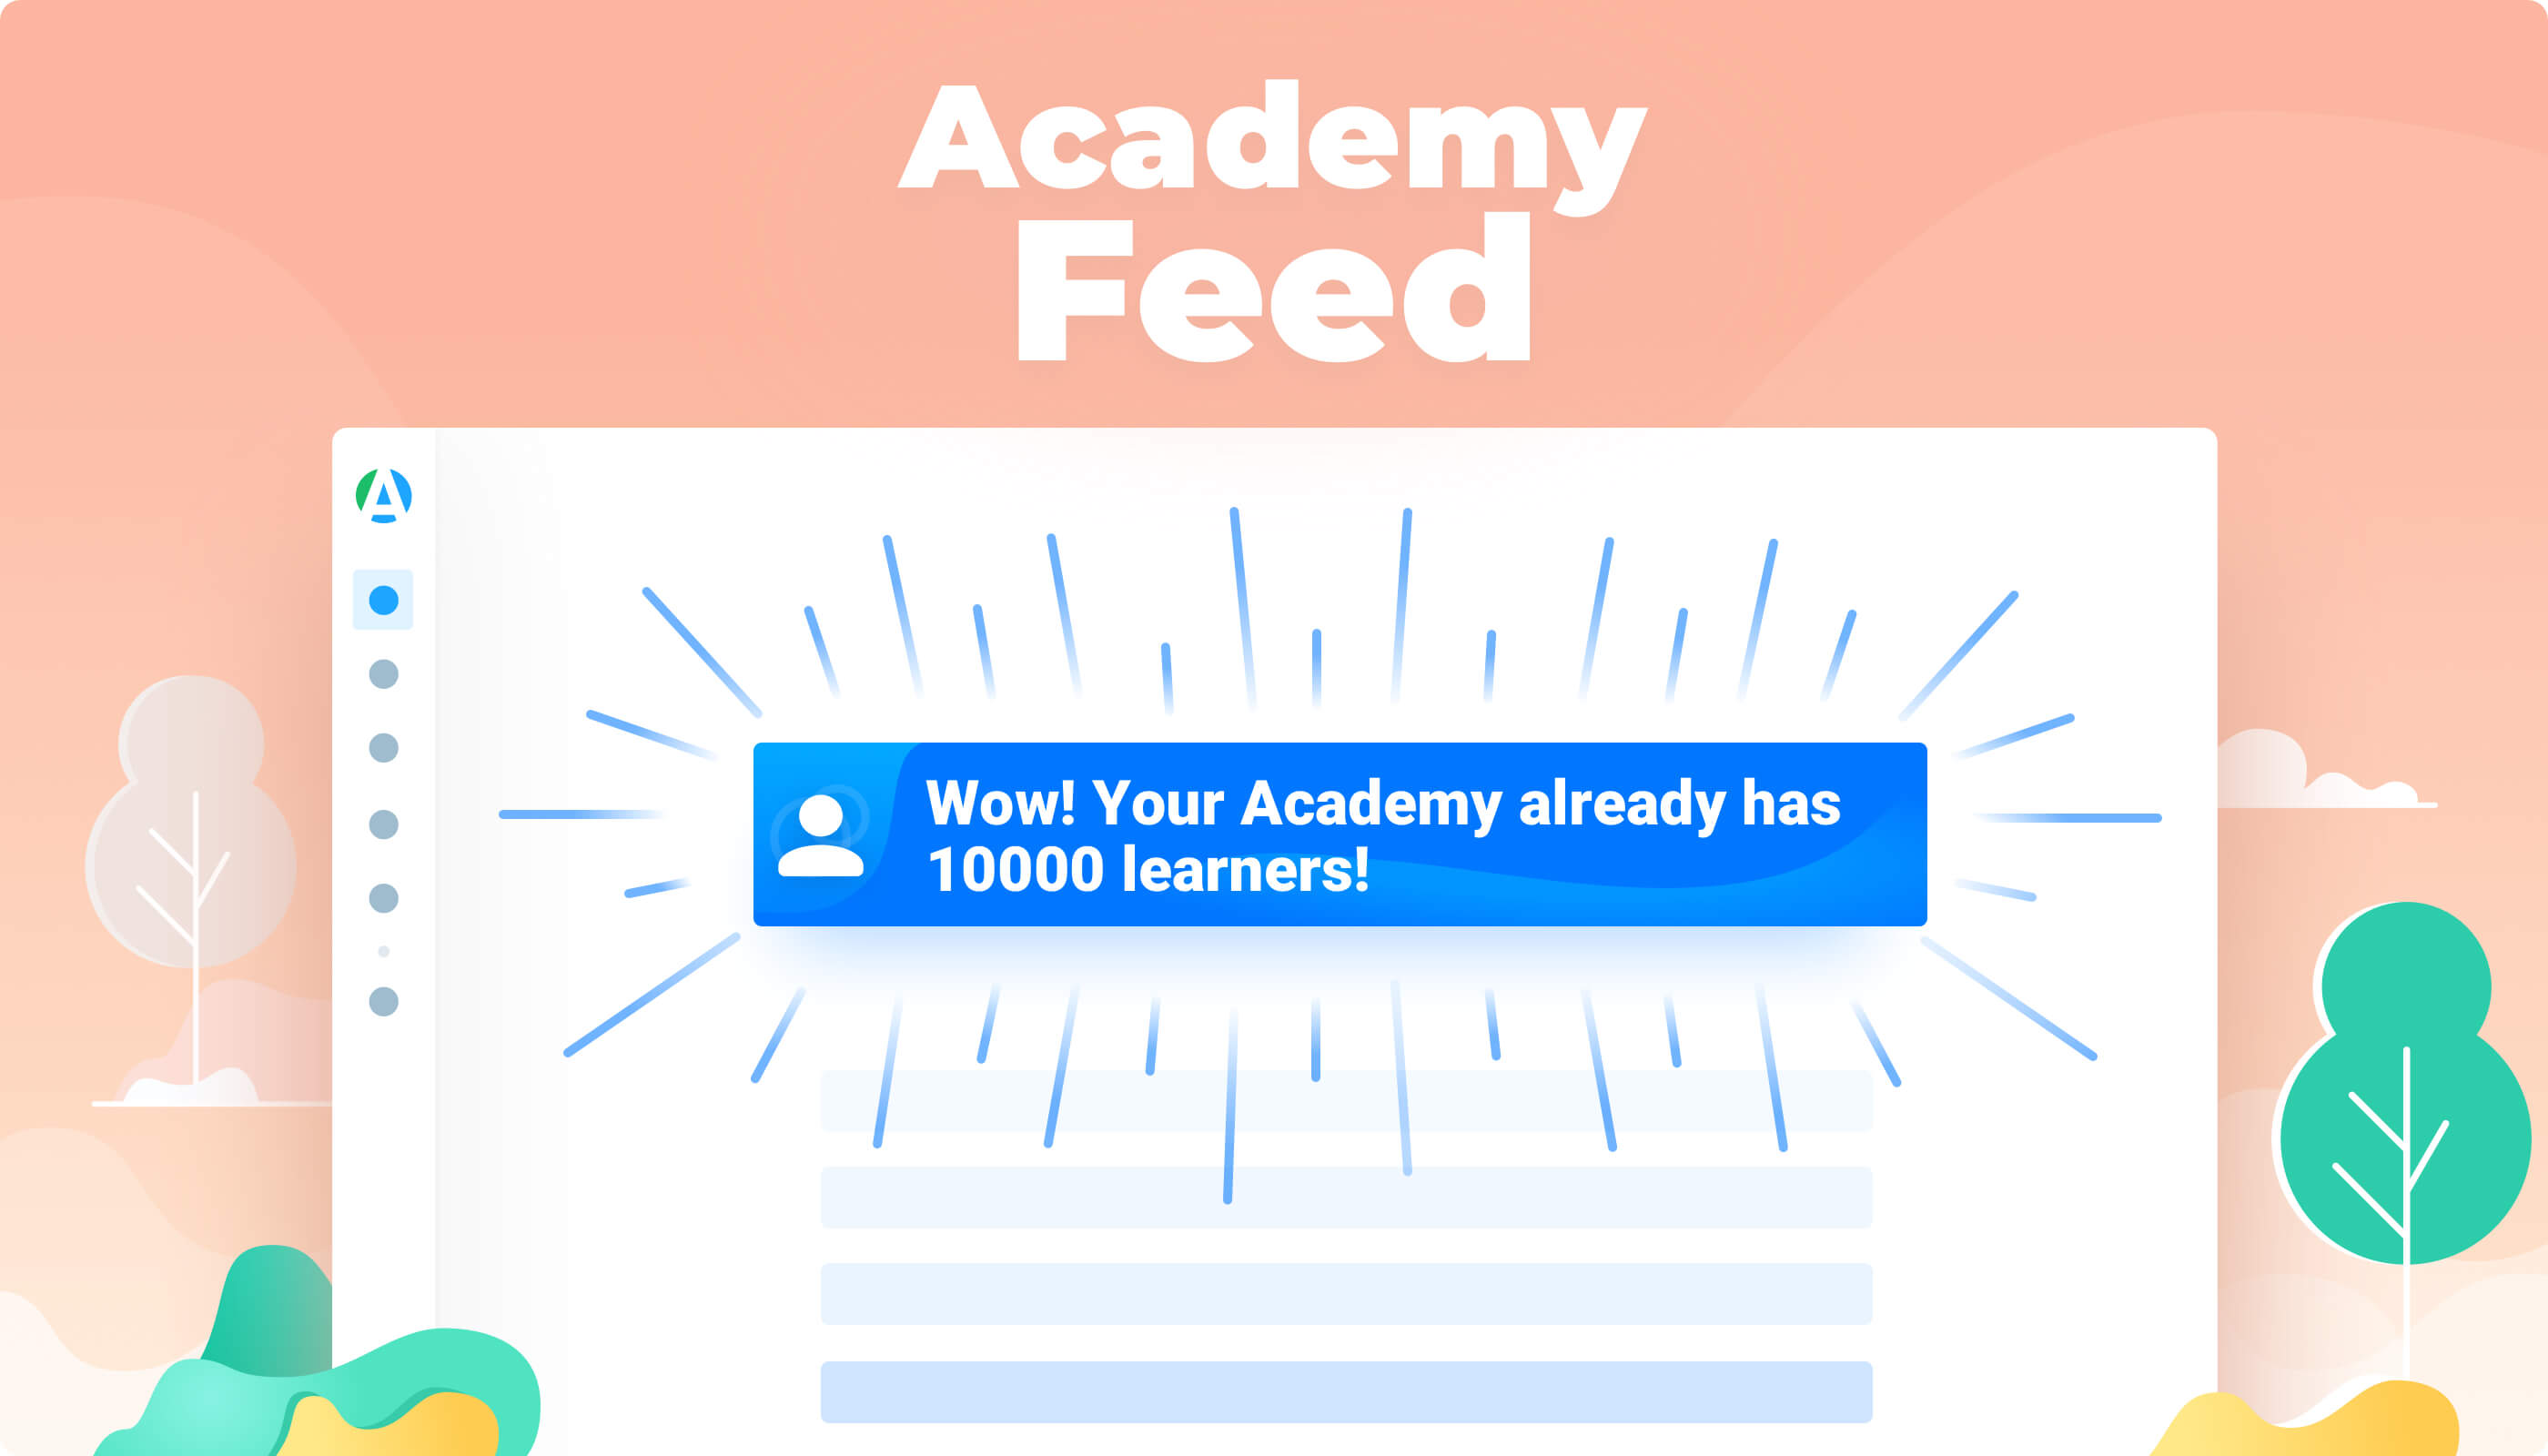 Academy Feed feature